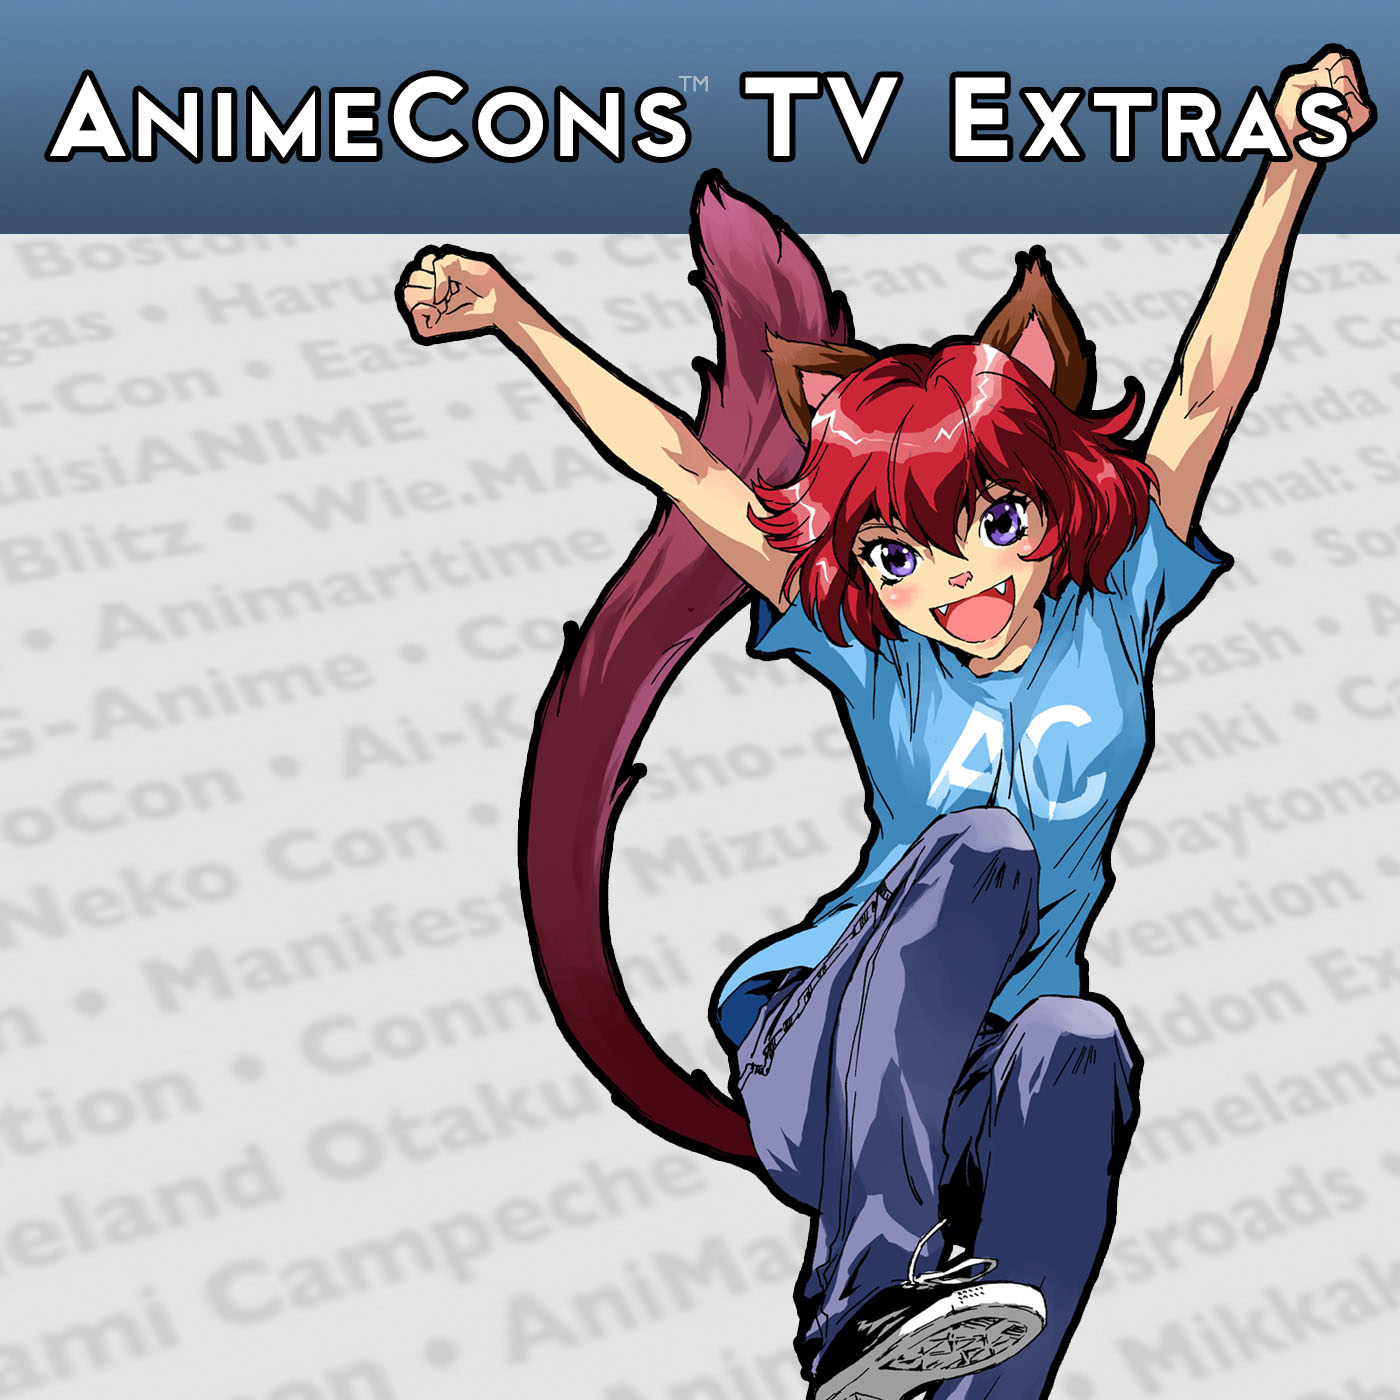 AnimeCons TV Extras